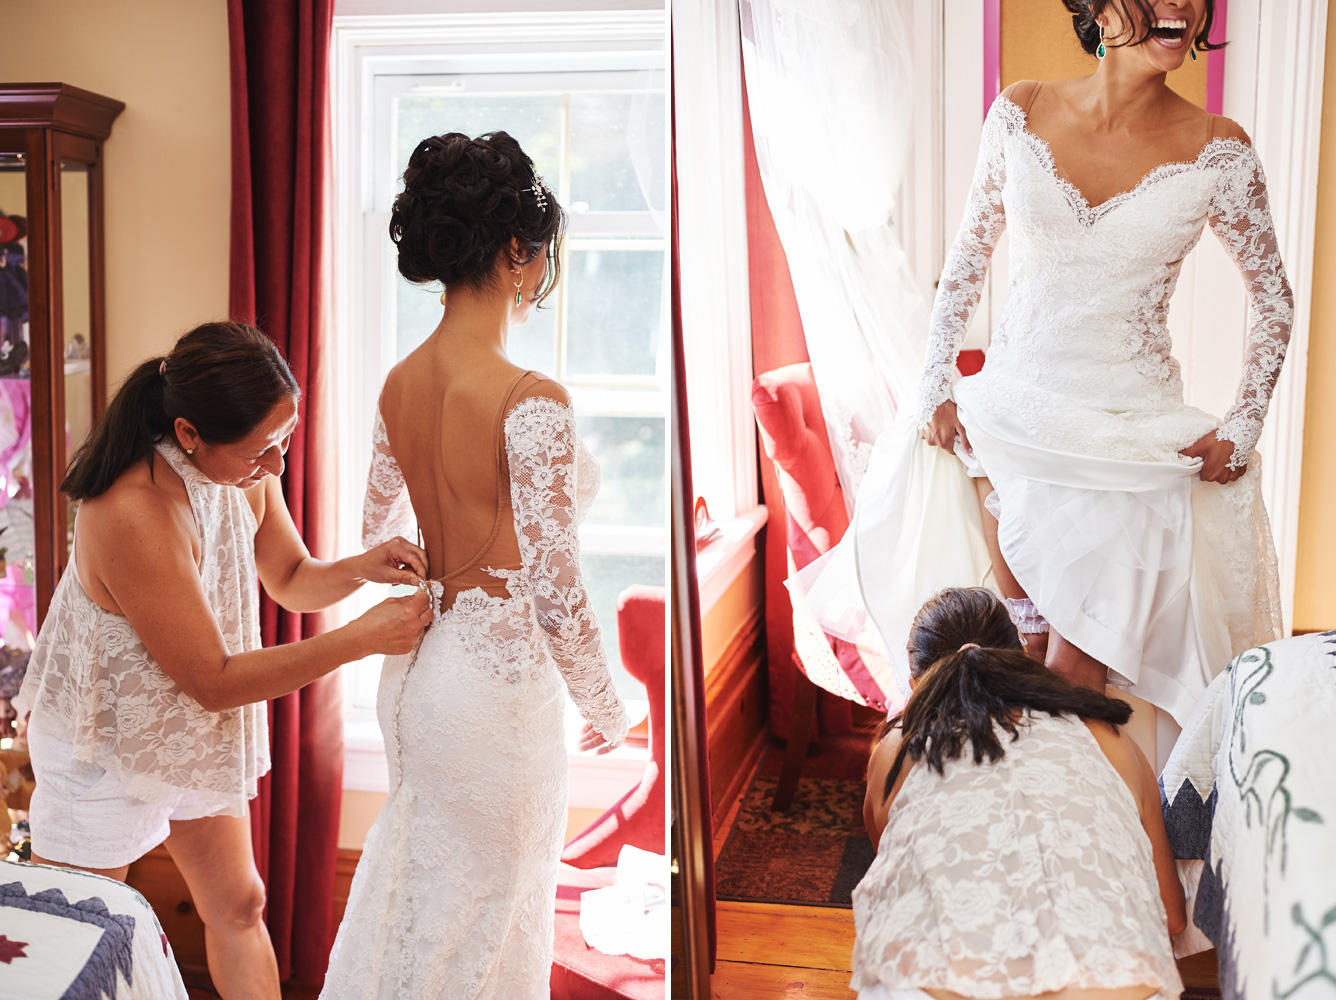 bride-getting-dressed-in-her-wedding-dress.jpg